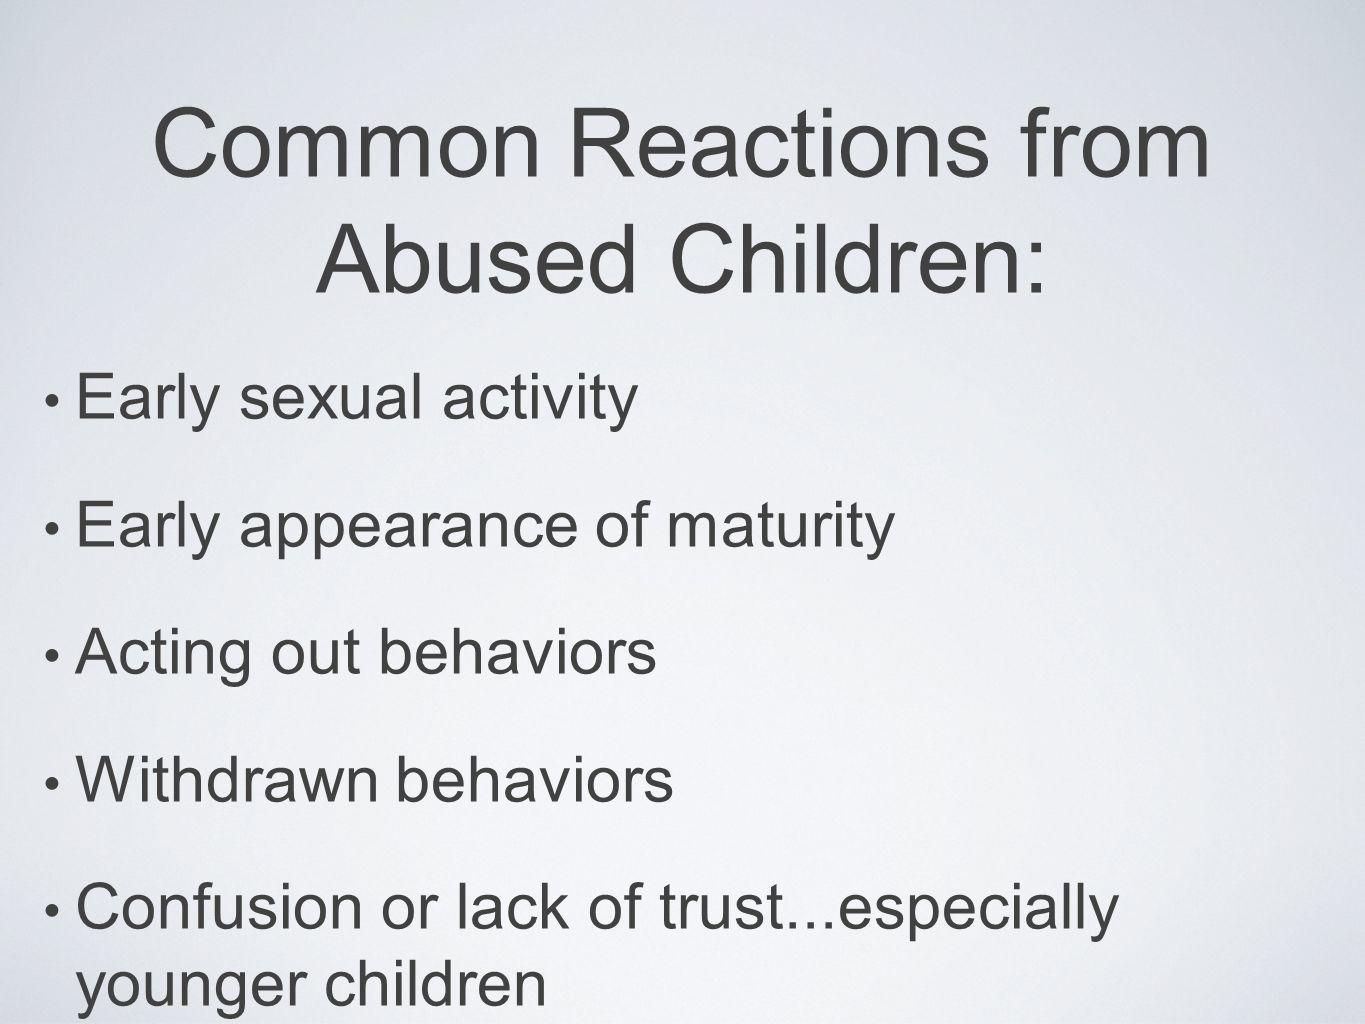 Common Reactions from Abused Children: